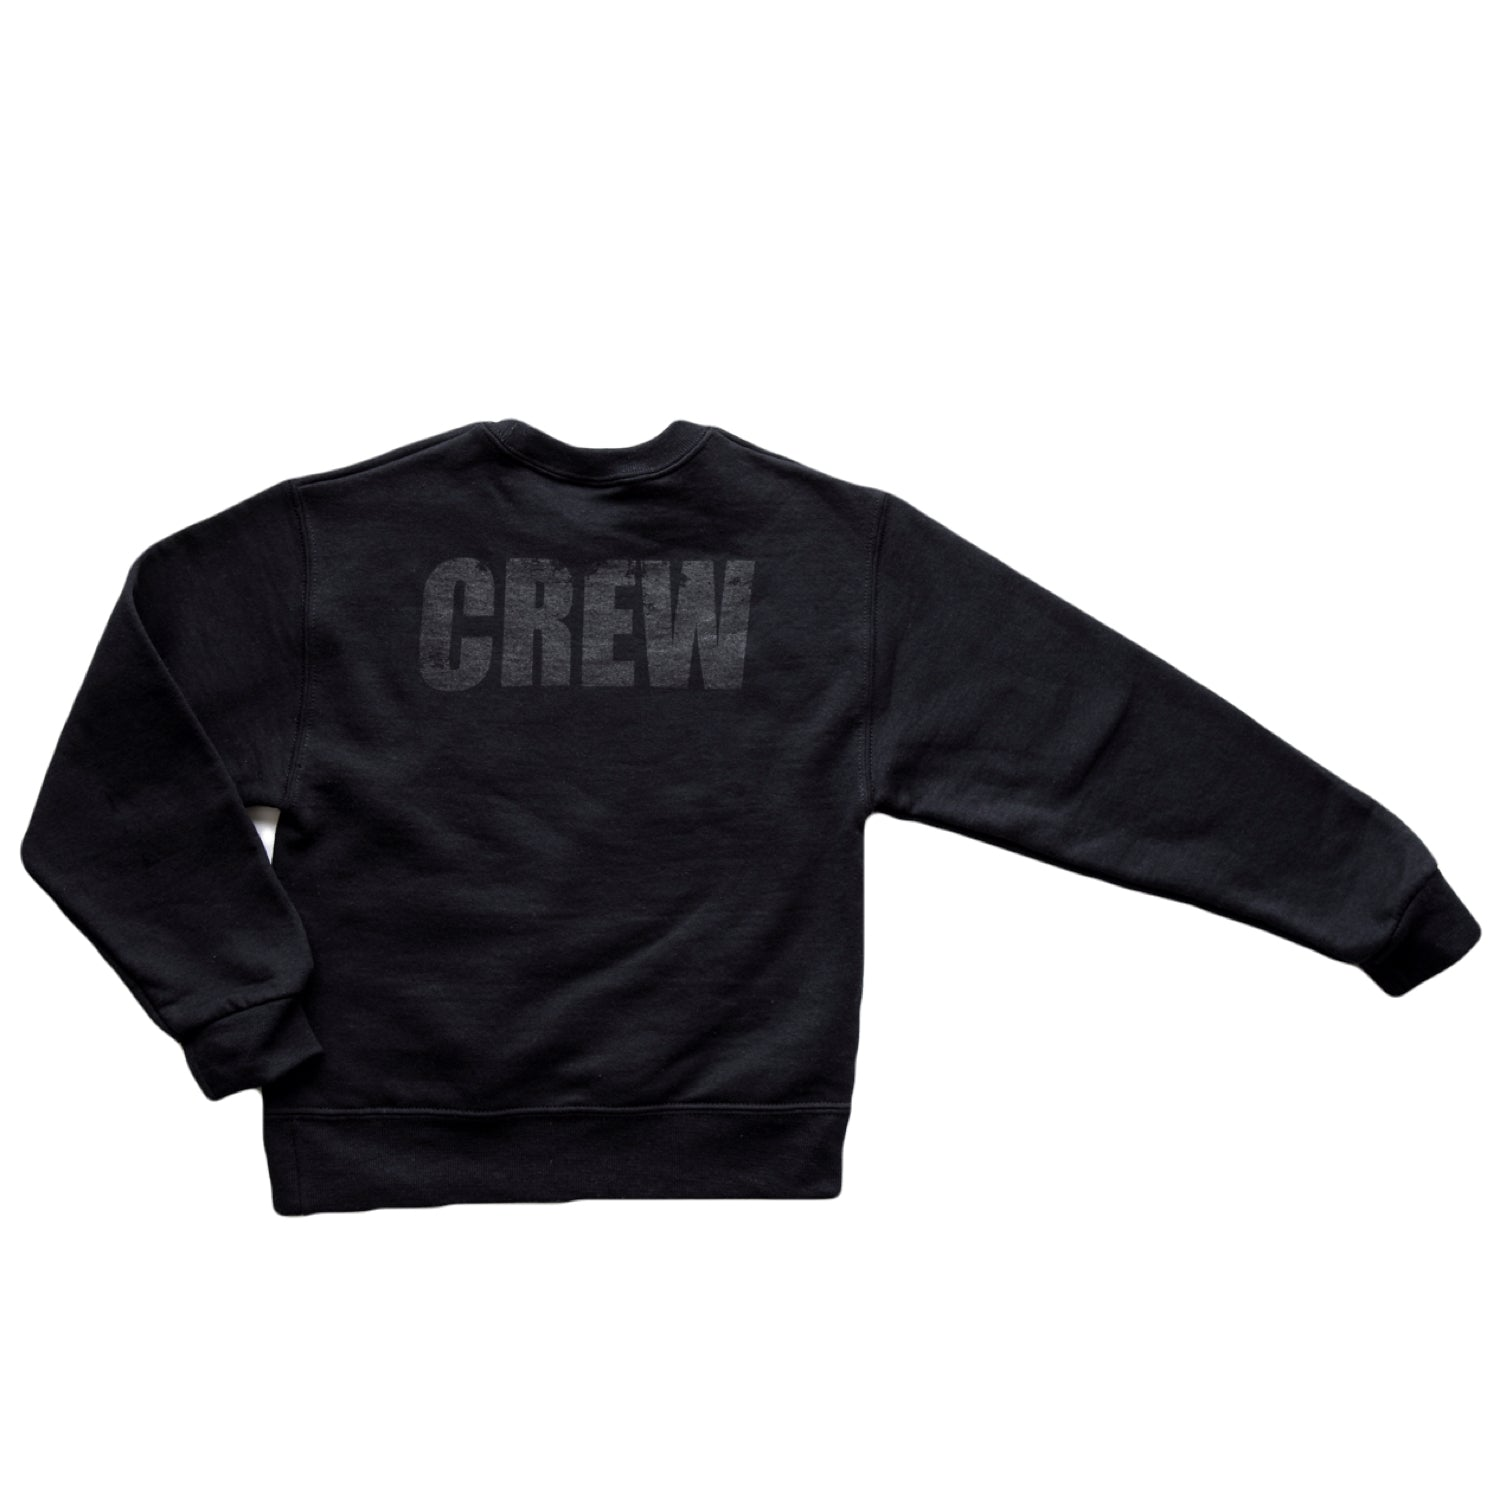 Custom Crew Sweatshirt